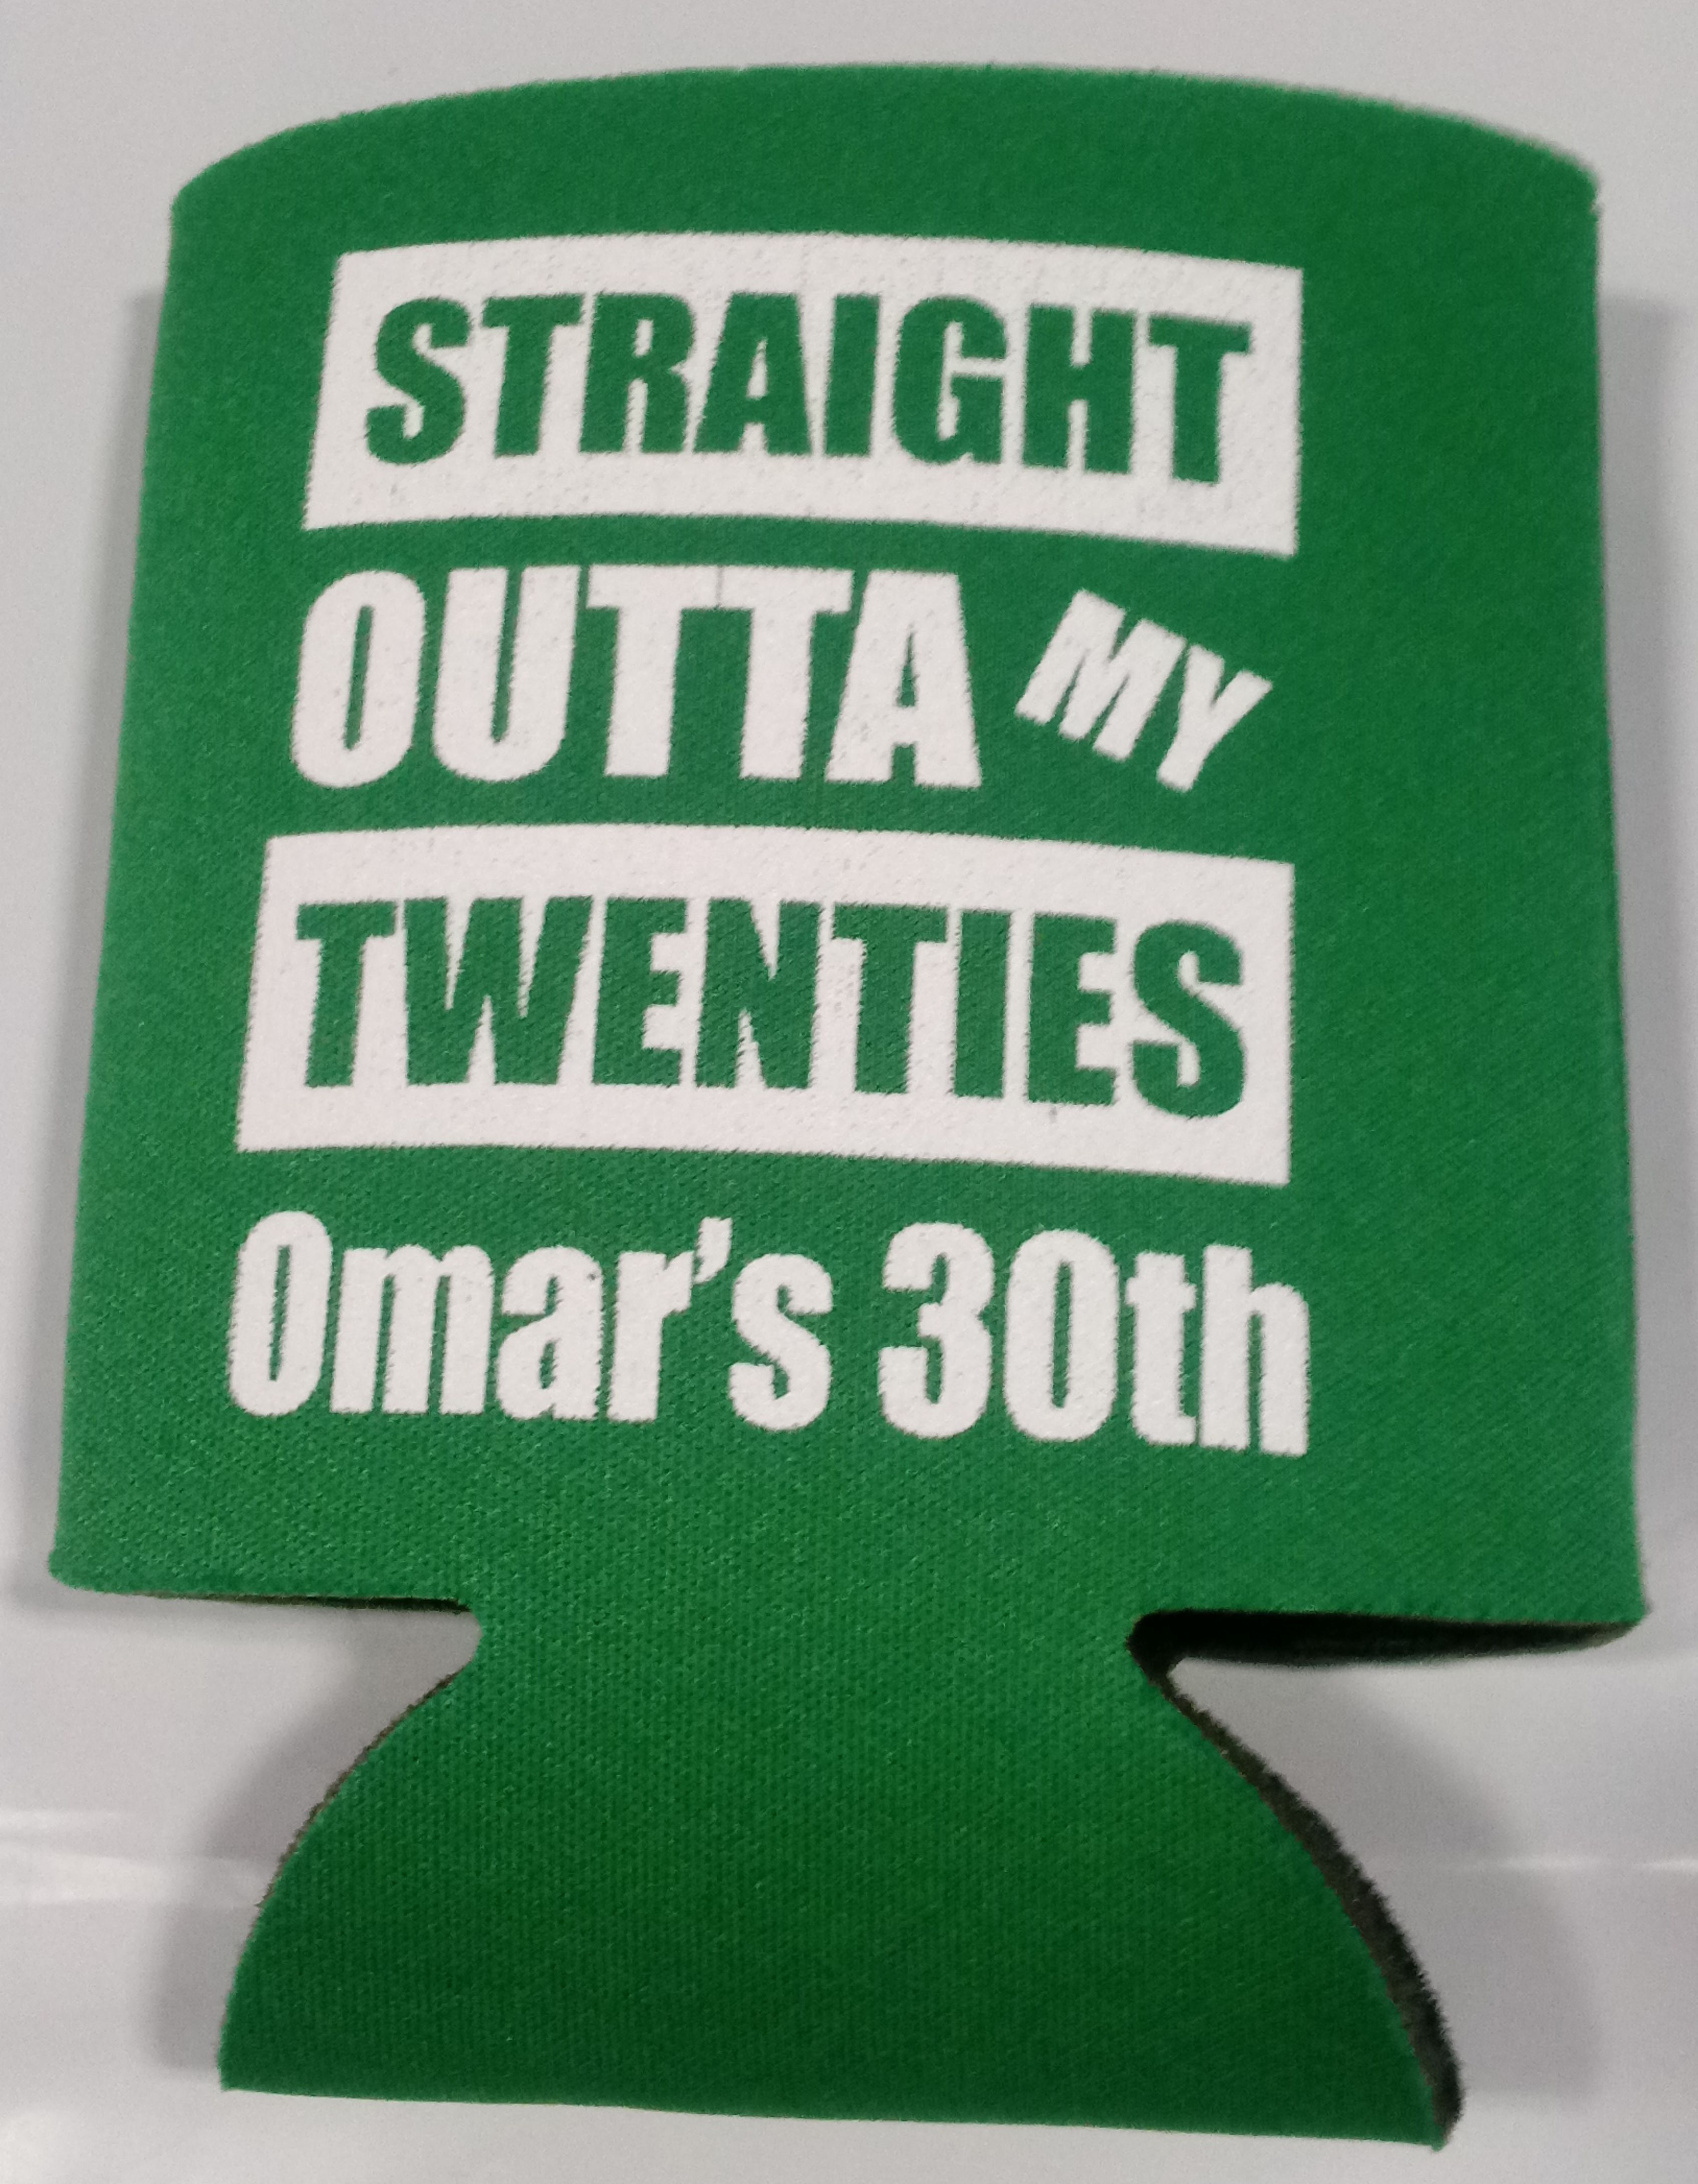 Straight outta my twenties 30th Birthday can coolers party favors SP1332